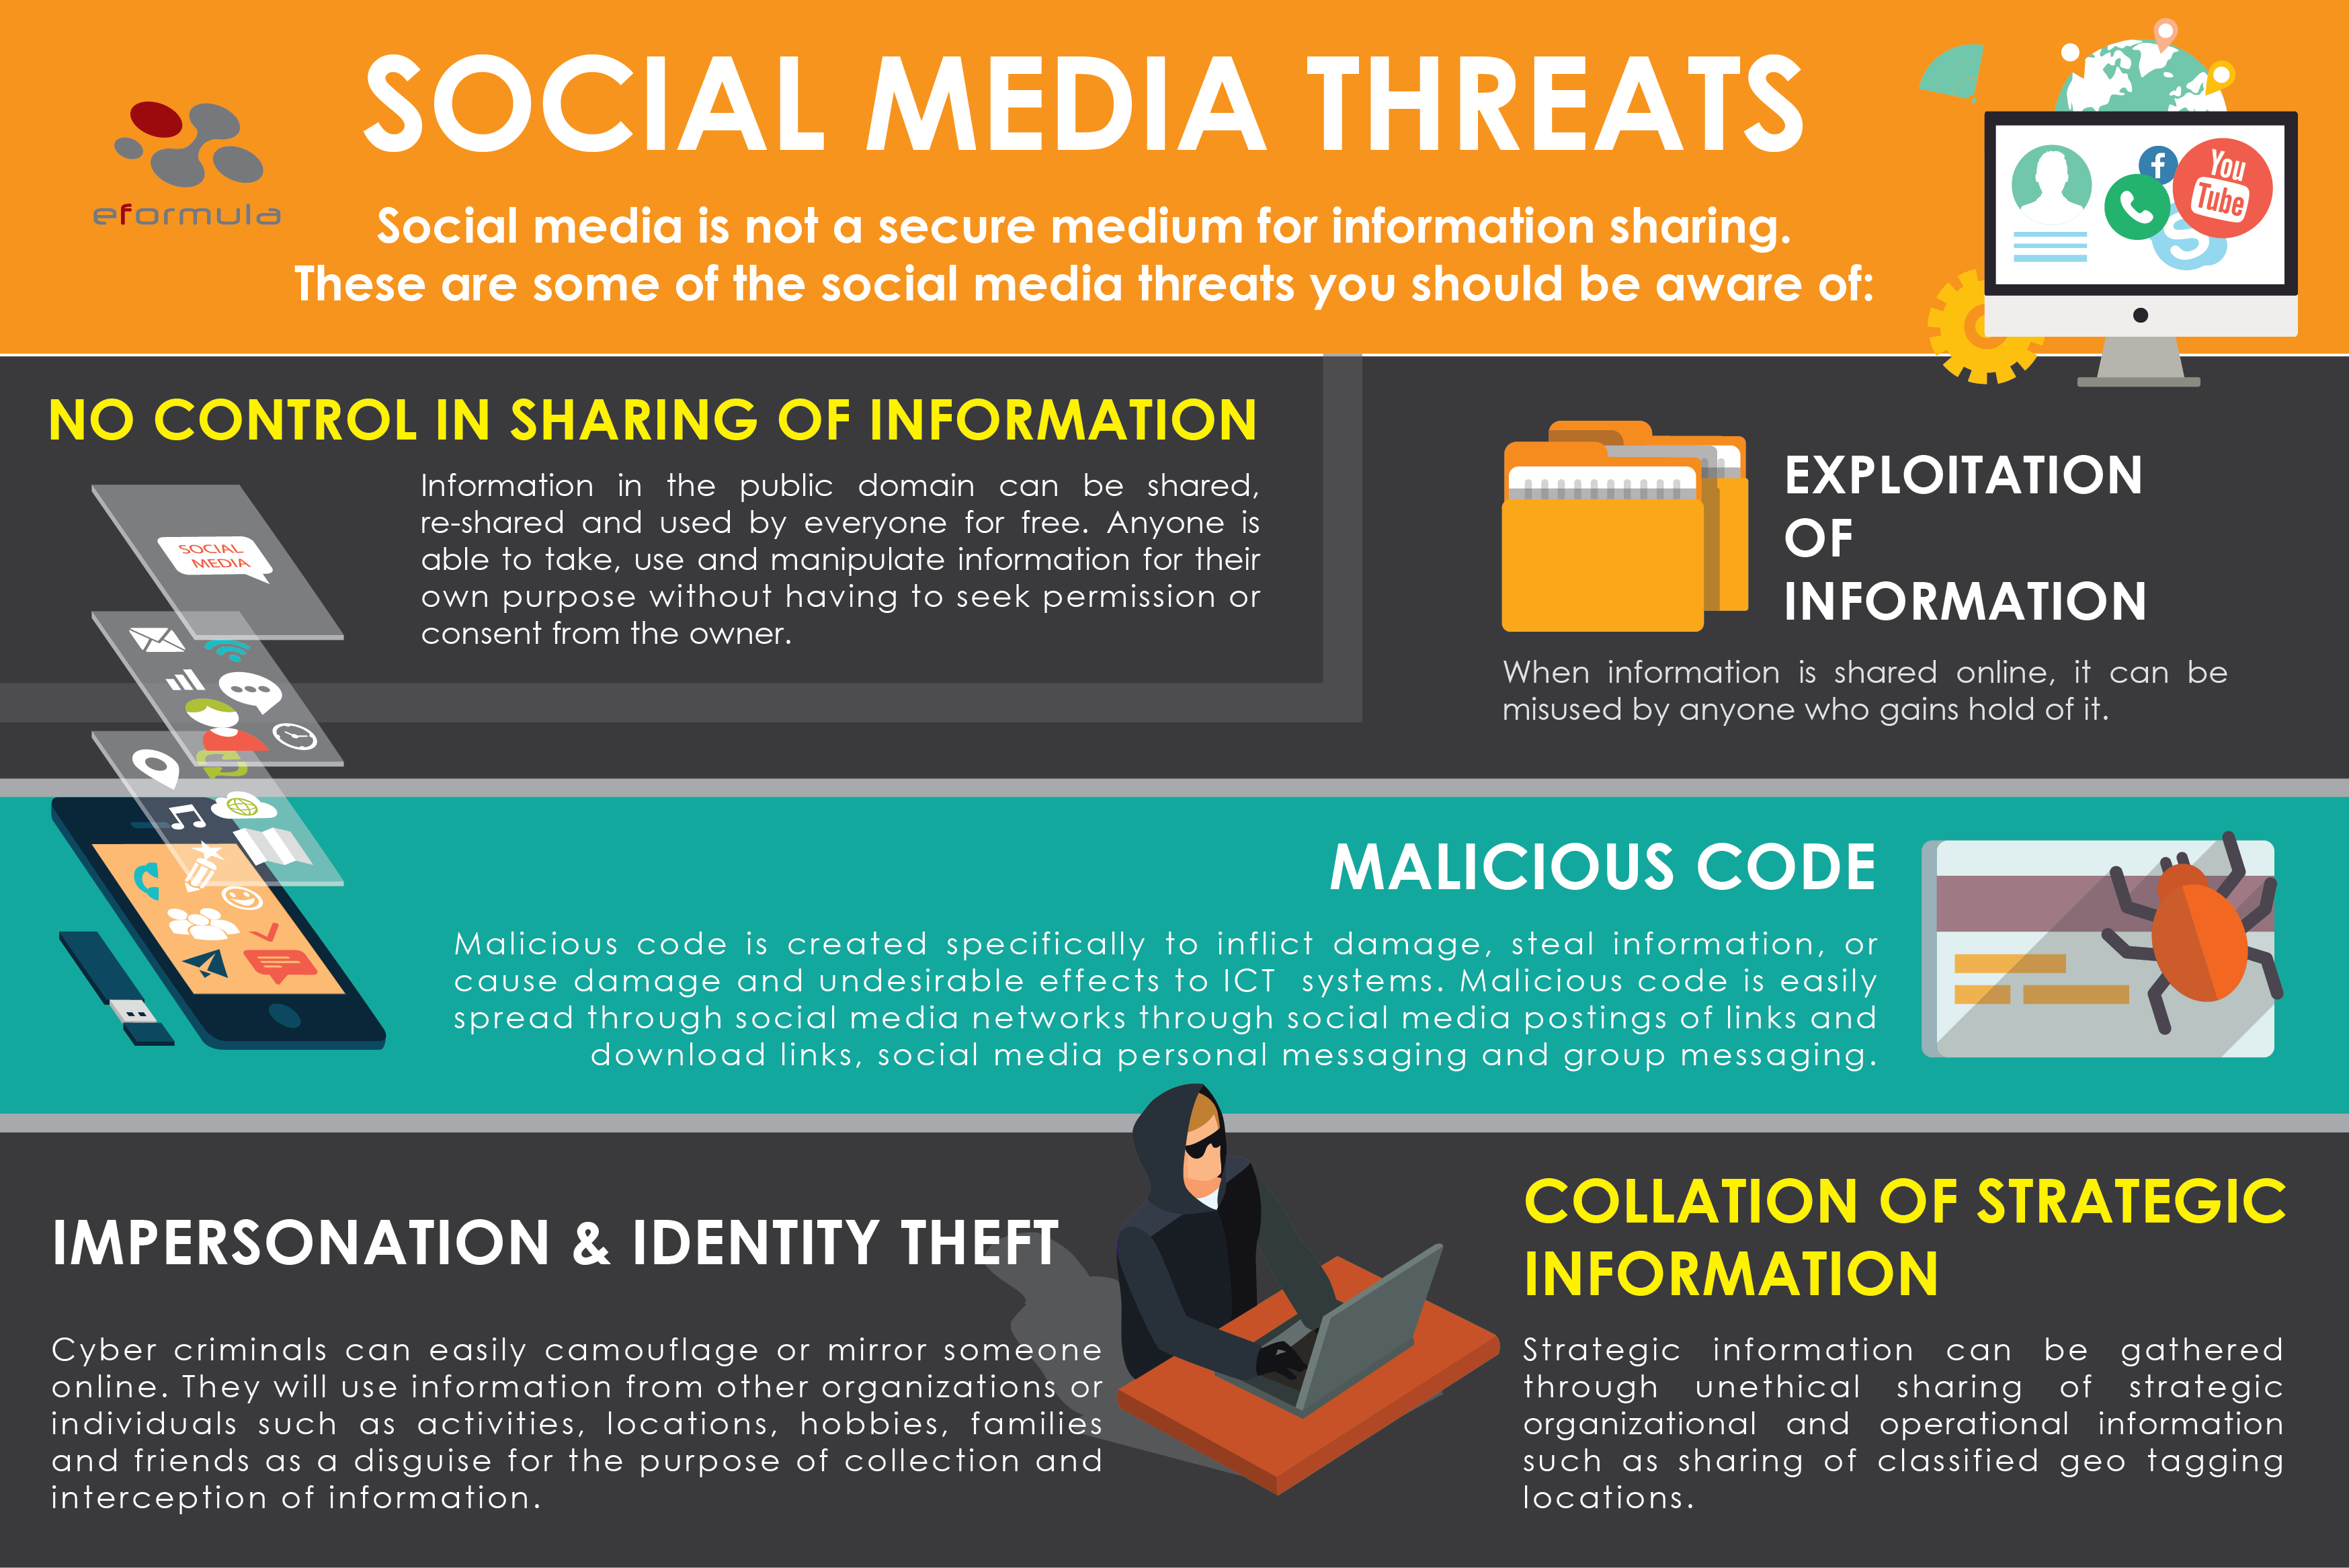 Social Media Threats: No control in sharing information, Exploitation of information, Malicious code, Impersonation & identity theft and Collationof strategic information.